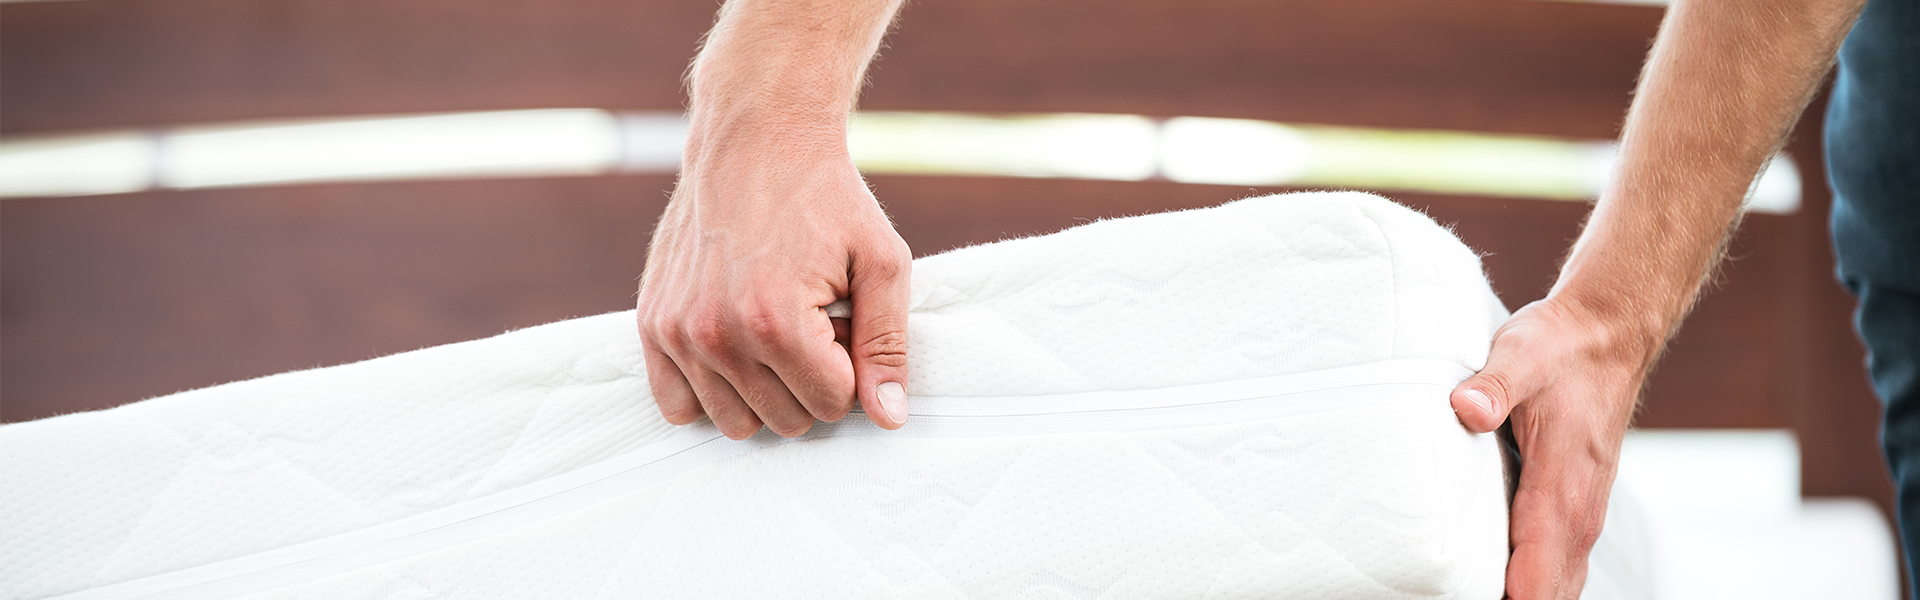 10 Tips to Make Your Mattress Last Longer